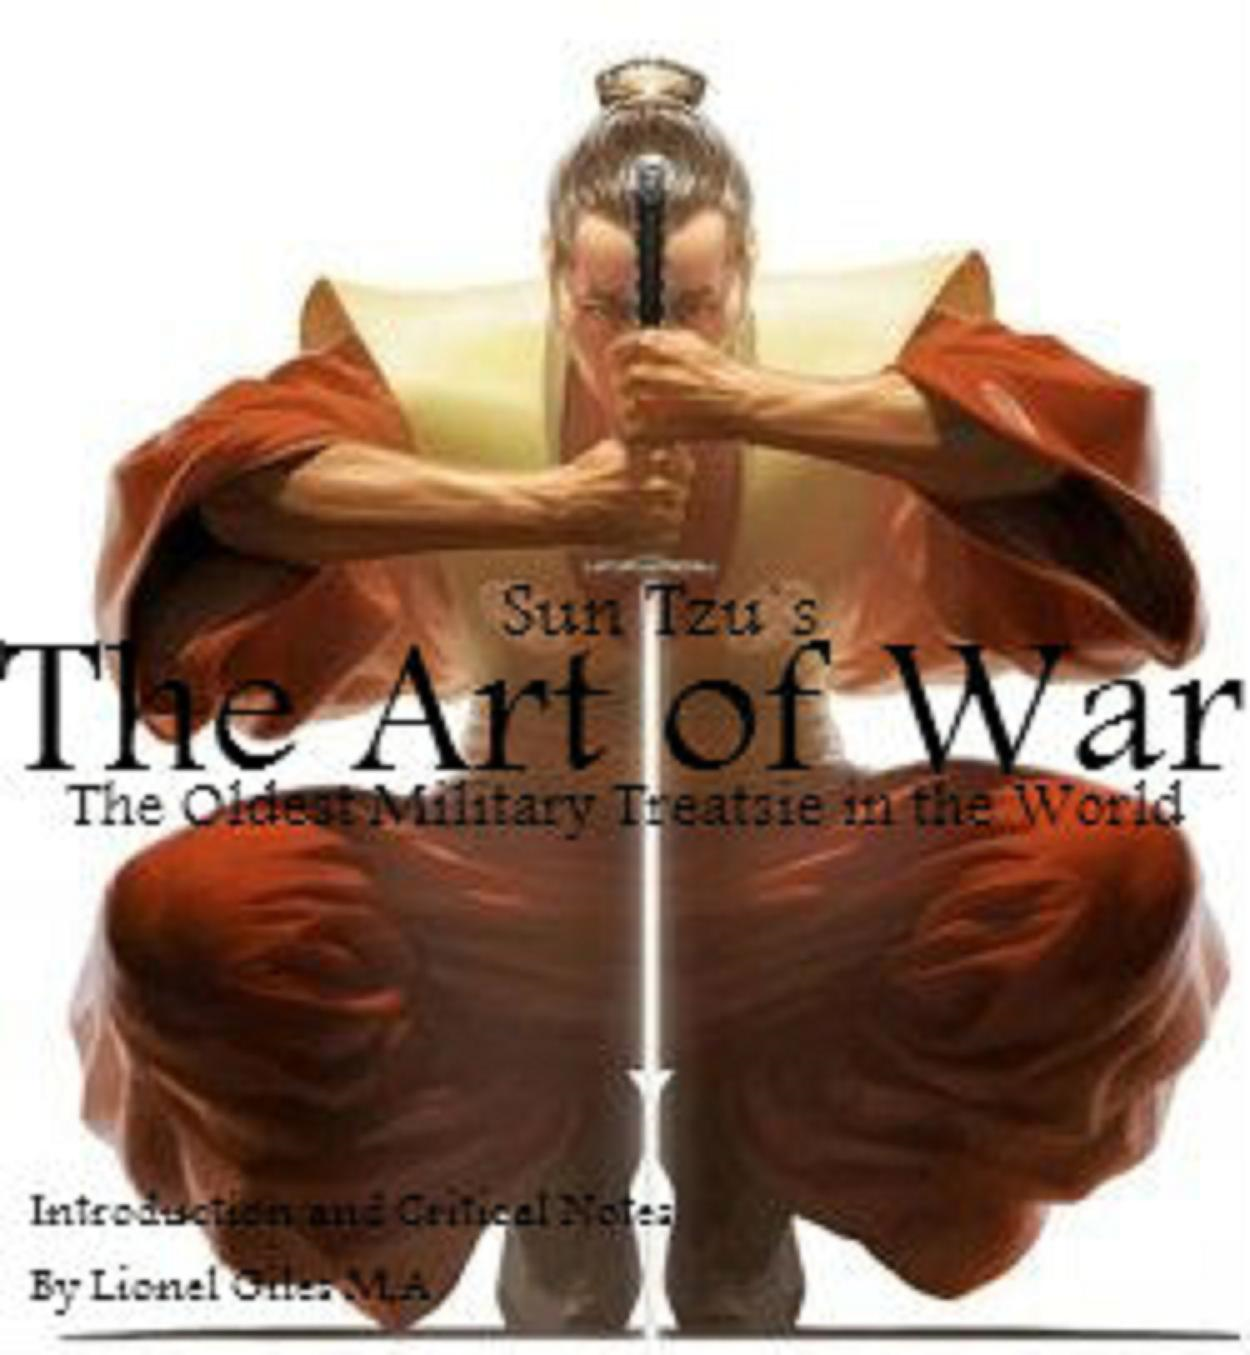 Sun Tzu The Oldest Military Treatise in the World